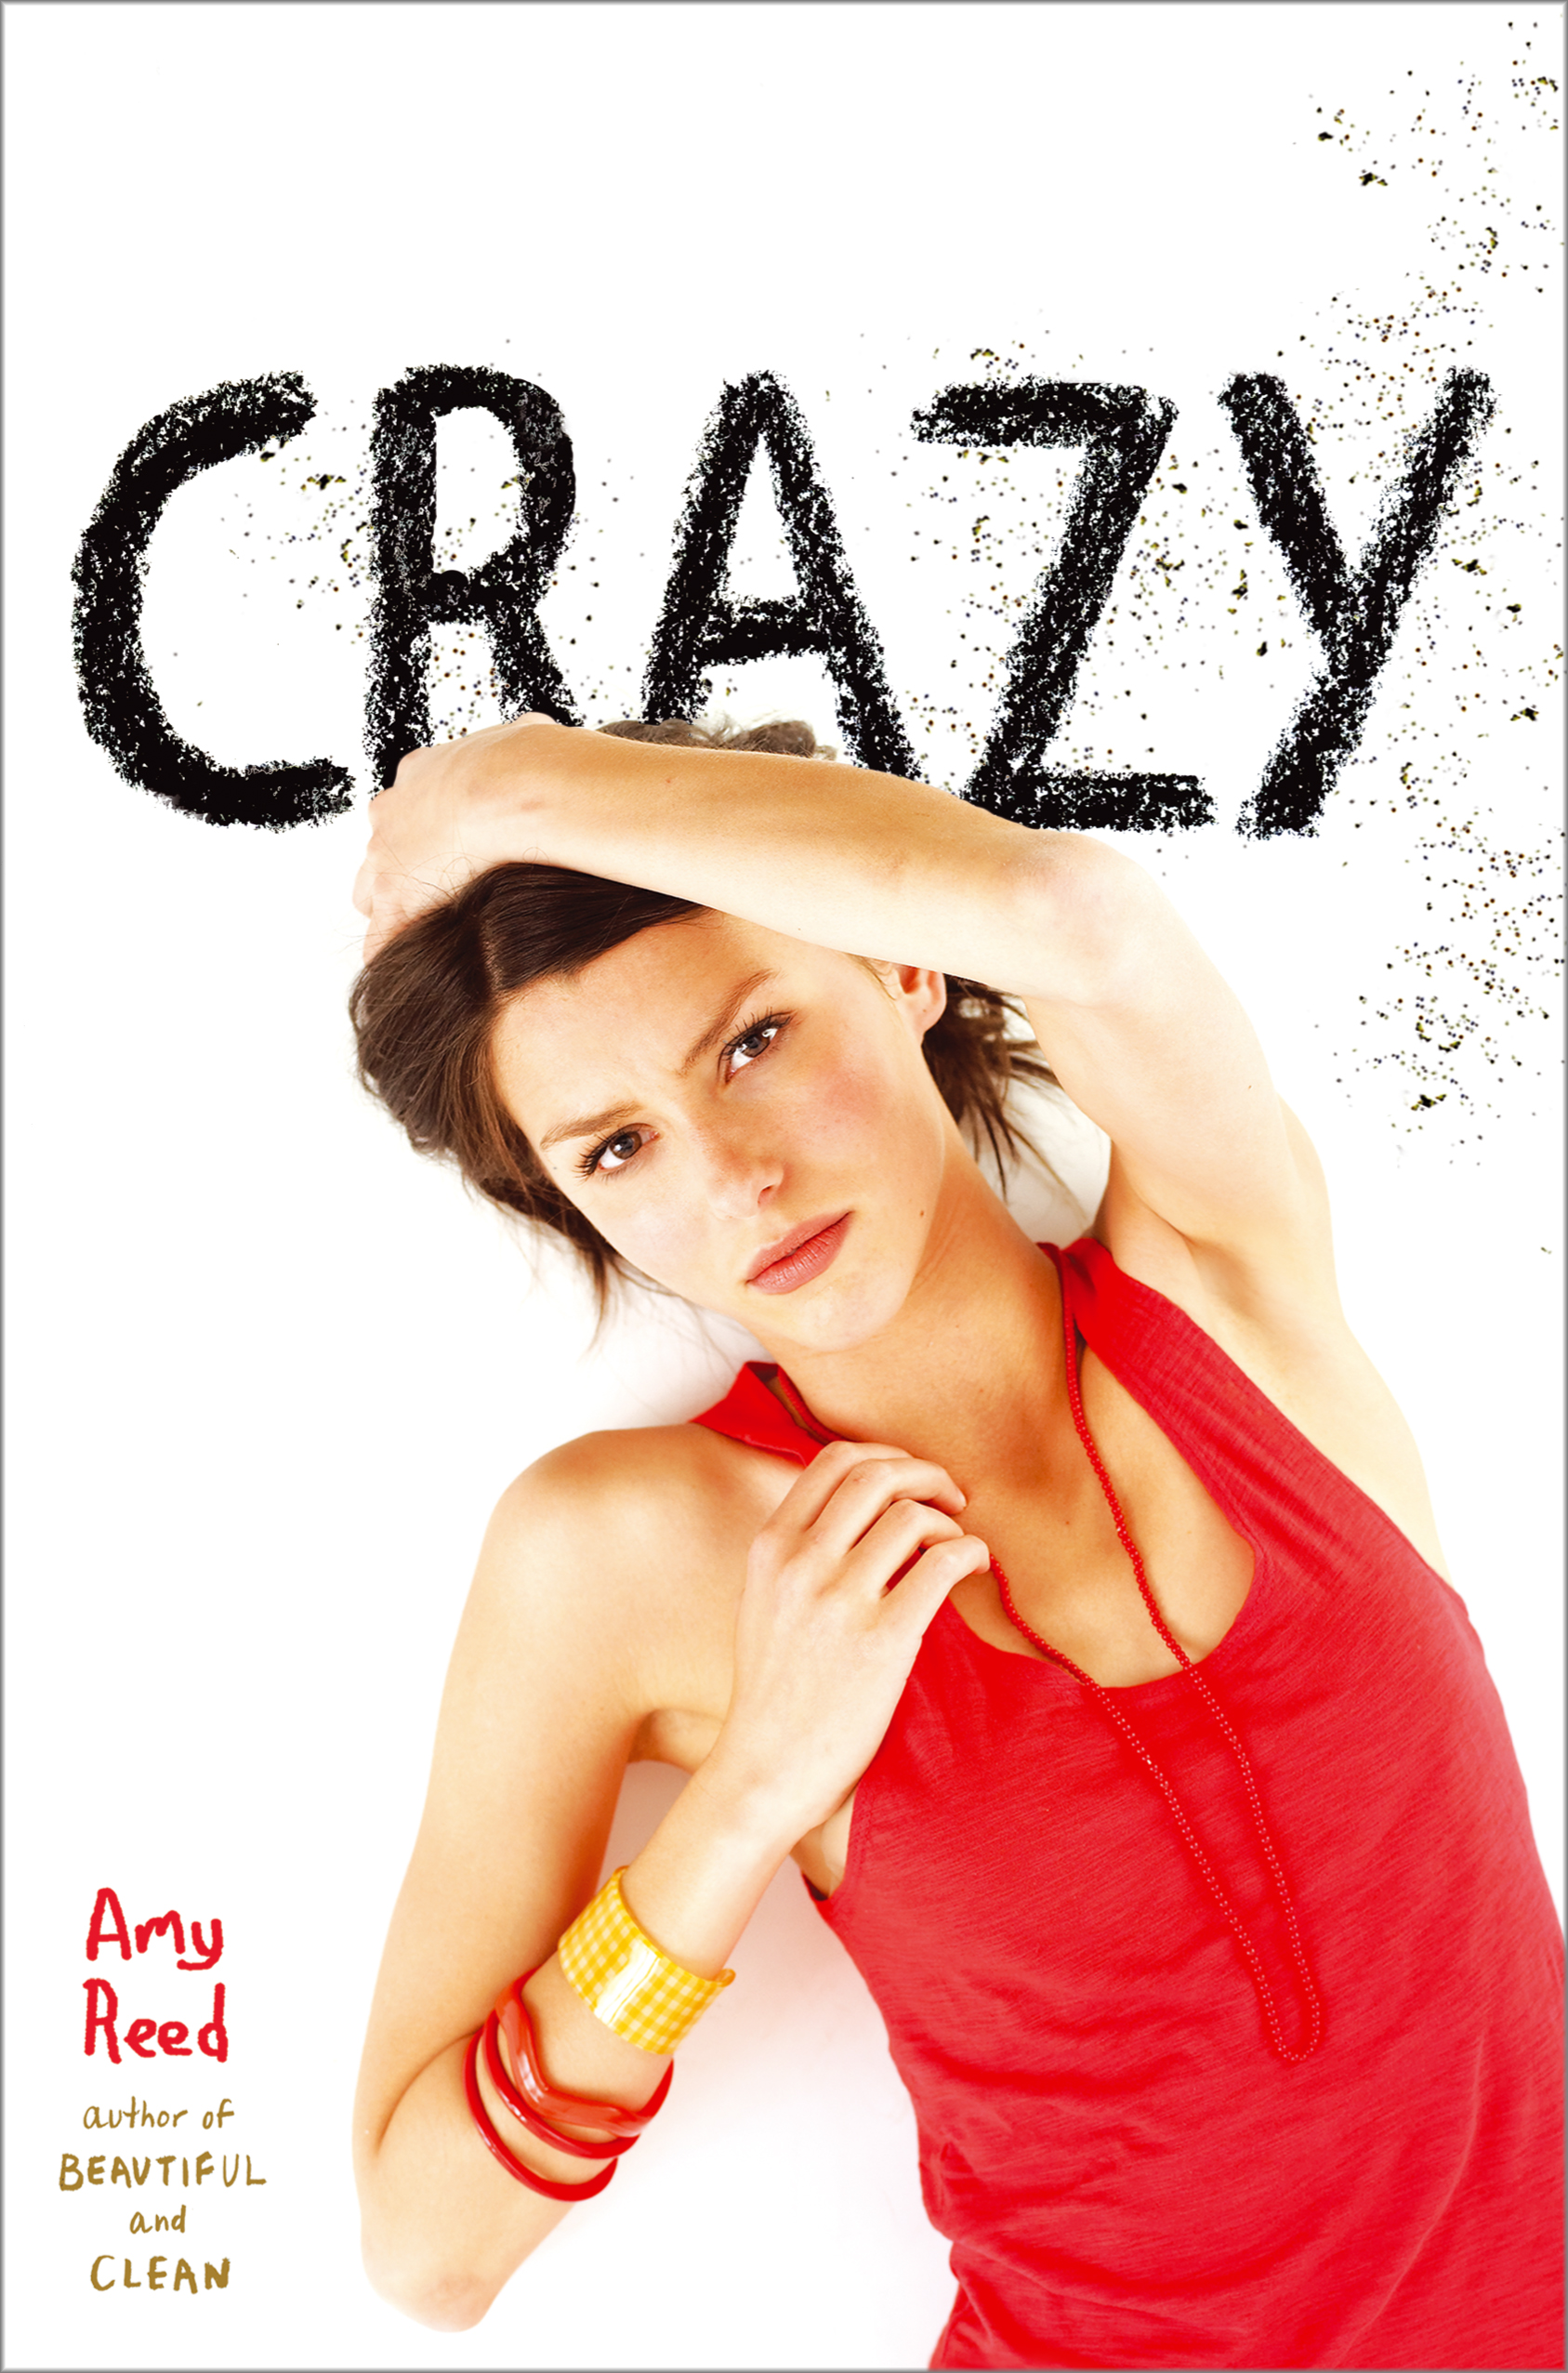 https://amyreed.files.wordpress.com/2012/04/crazy-cover.jpg